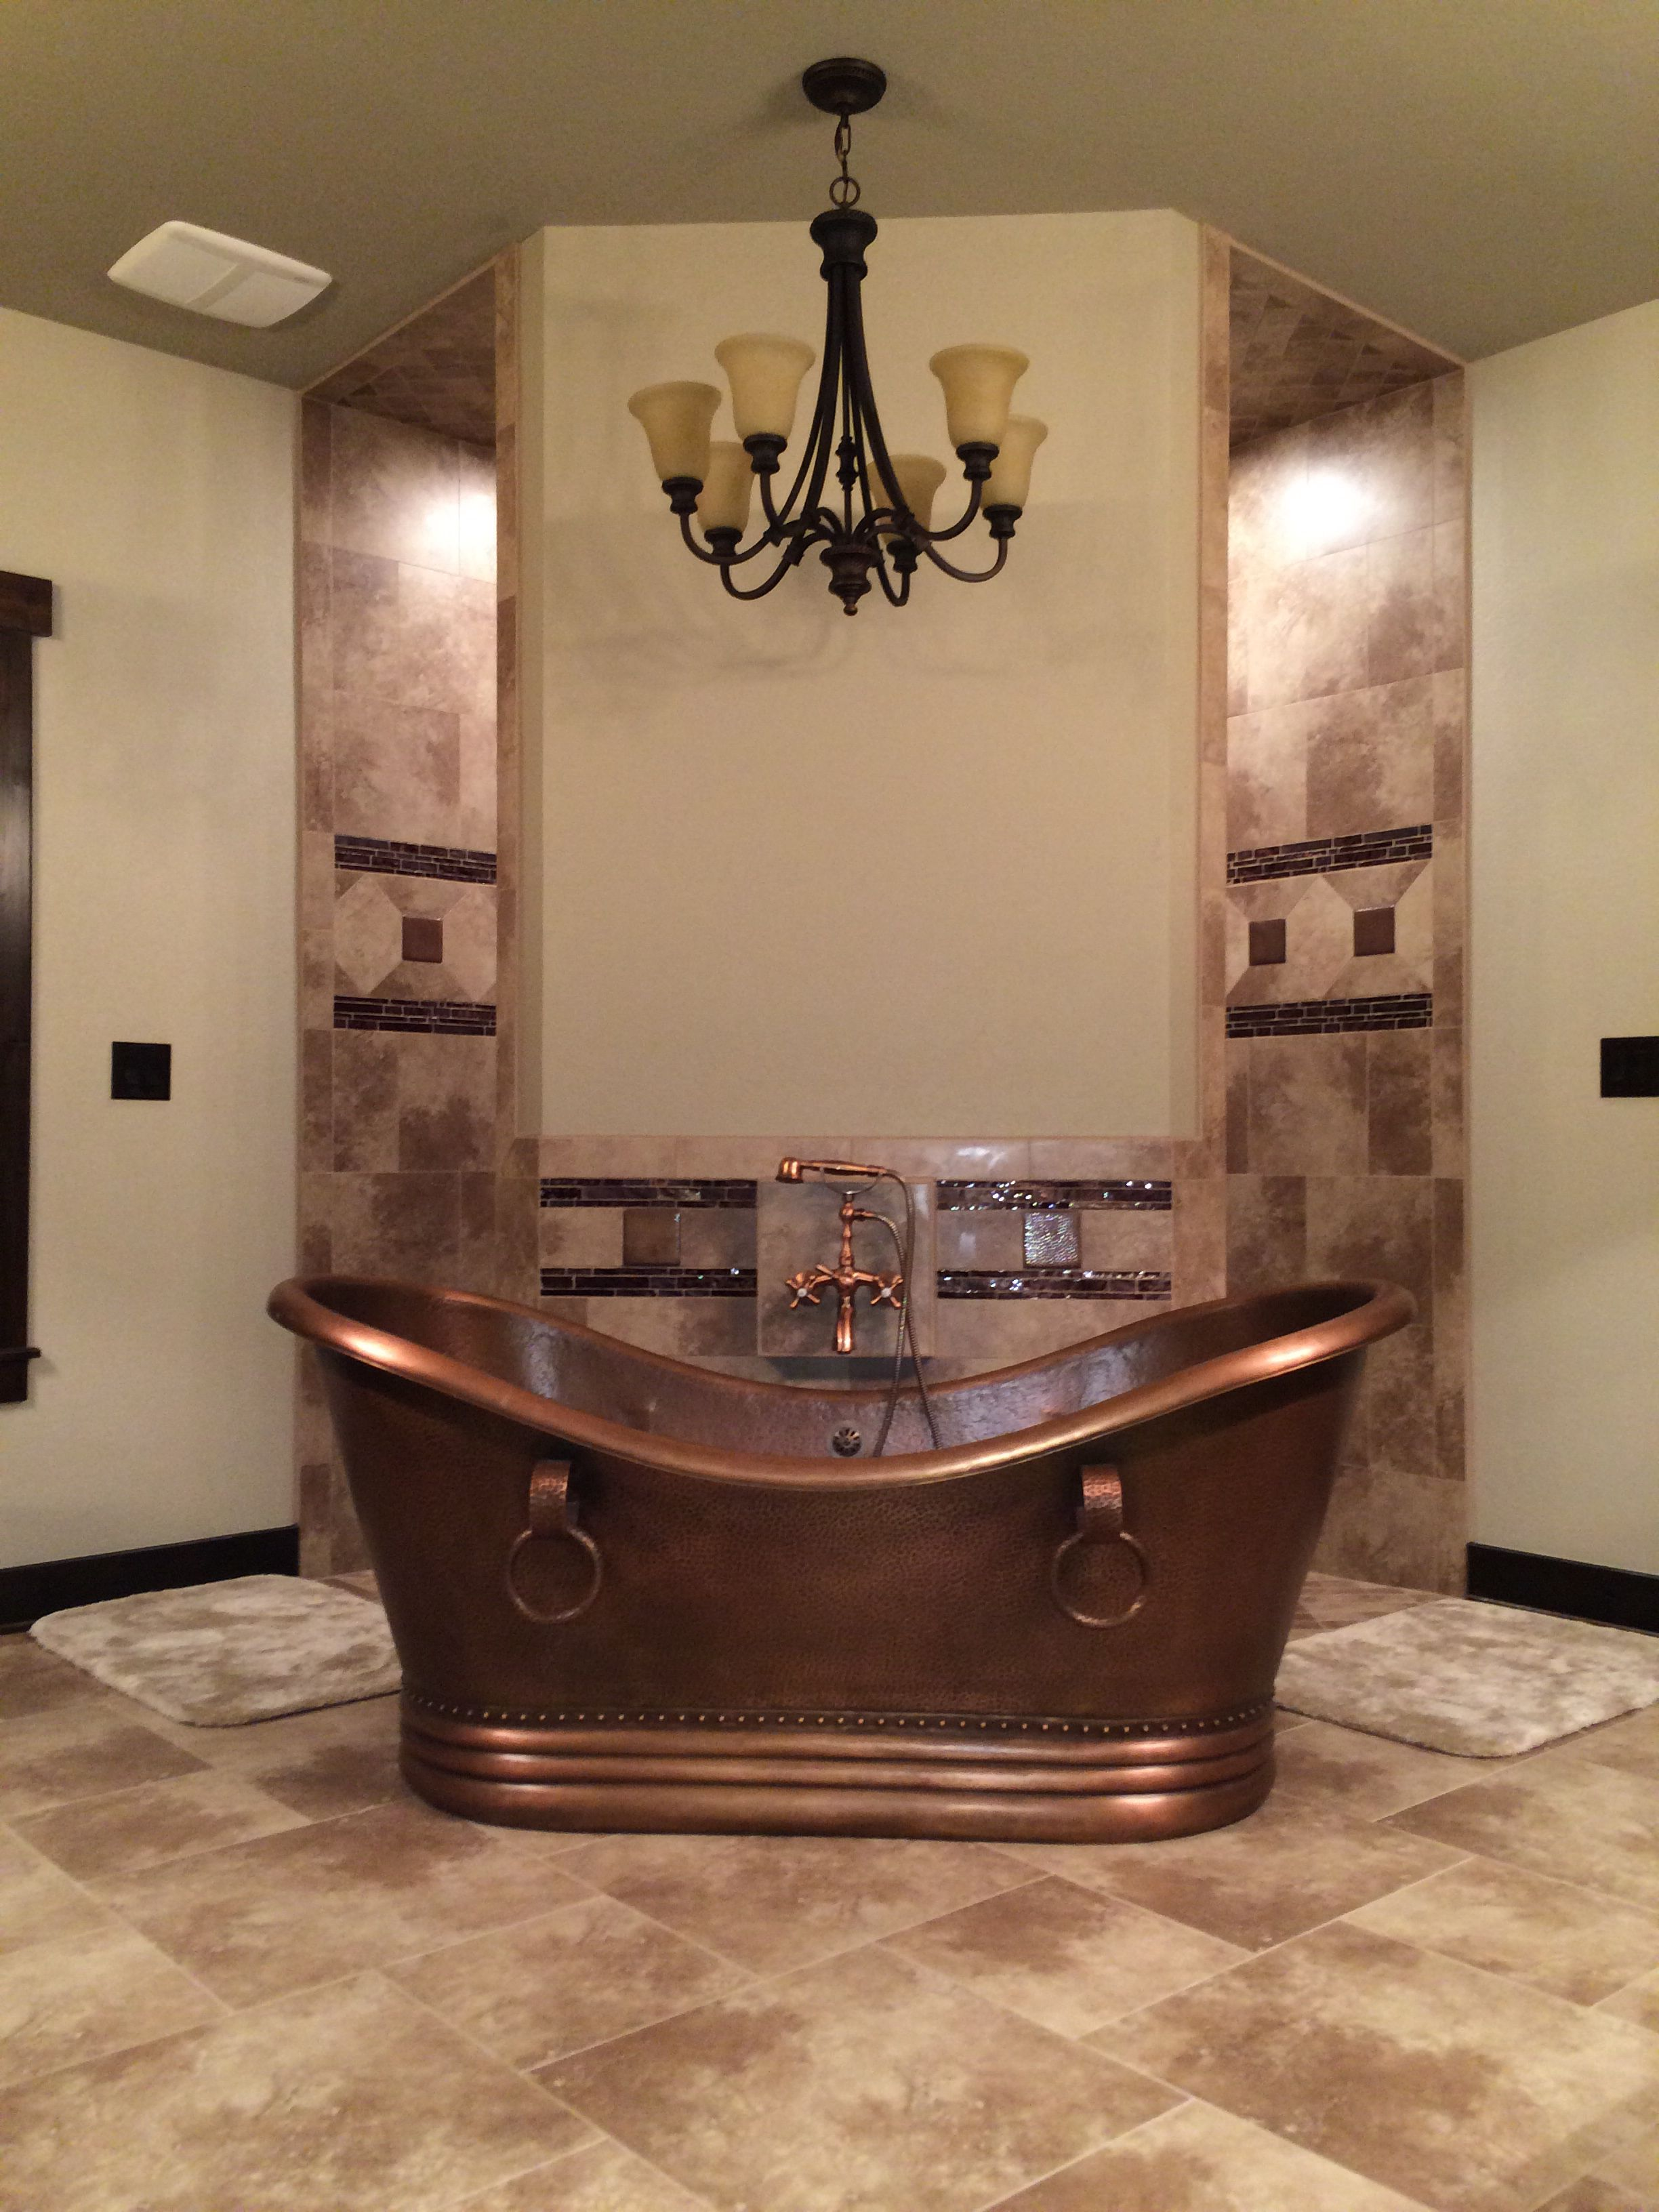 cover remodel tiles with tub bath copper dimensions bathroom tubs bathtub products fiberglass refinishing inserts